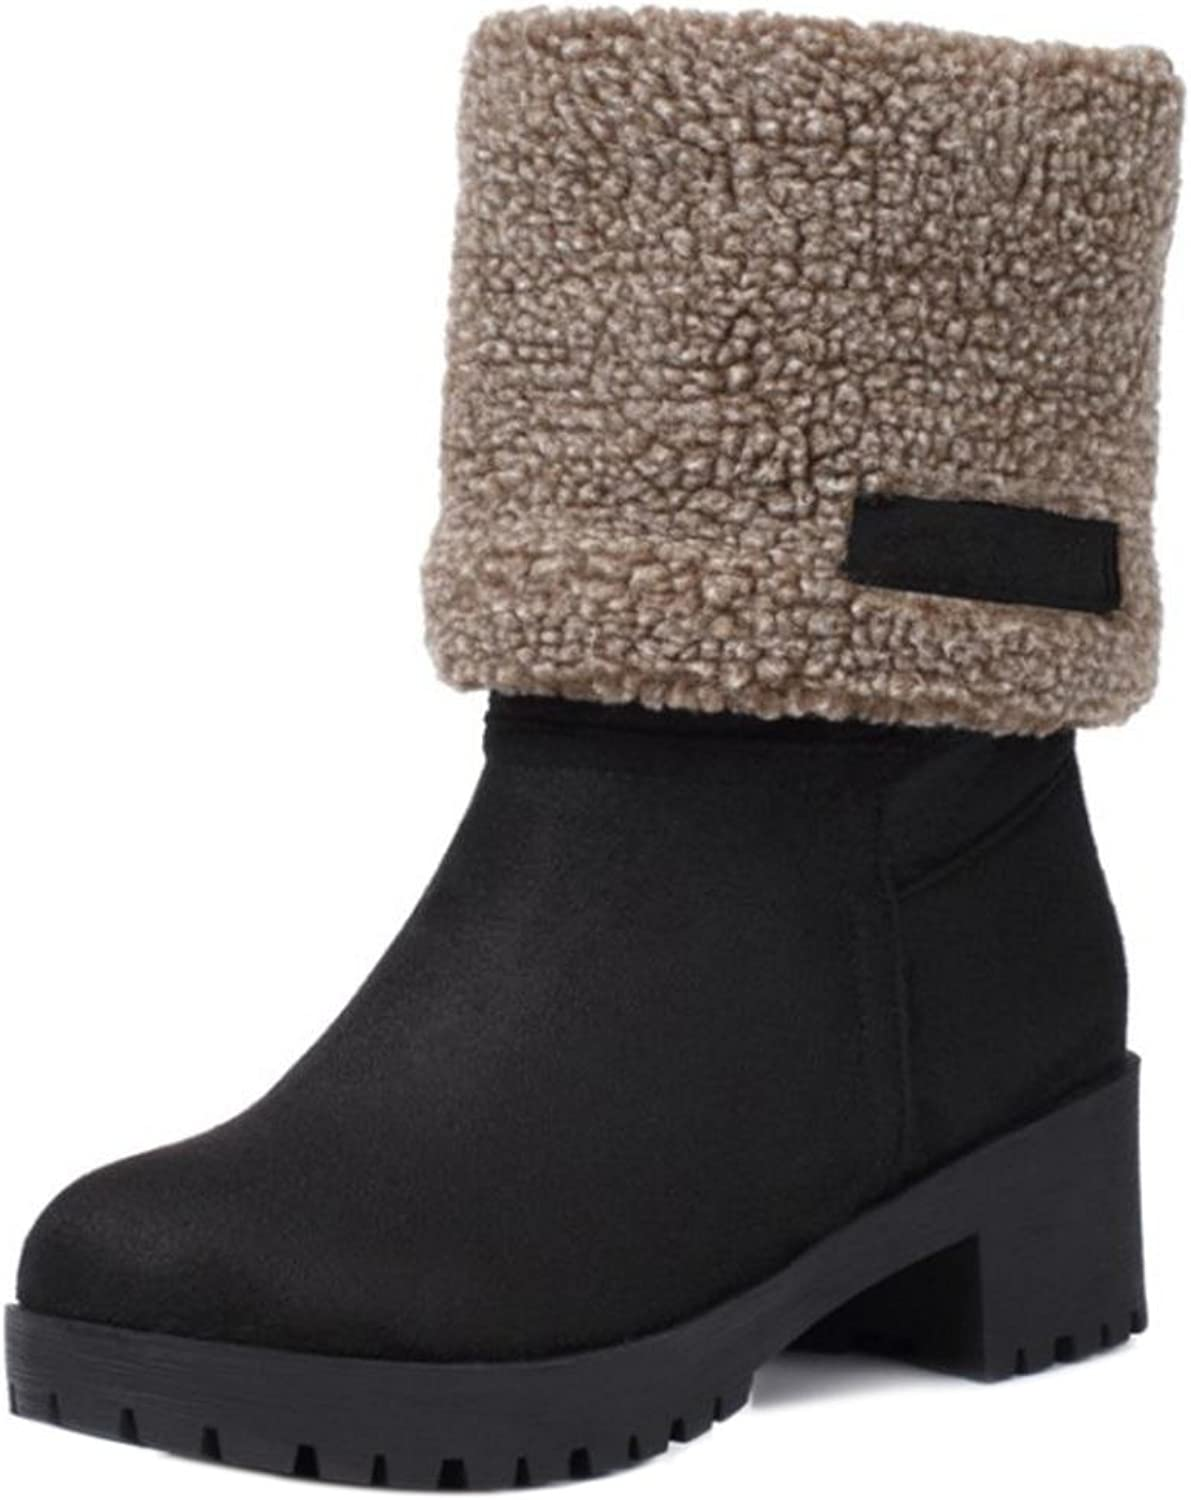 FizaiZifai Women Boots Pull On Ankle Mid Calf